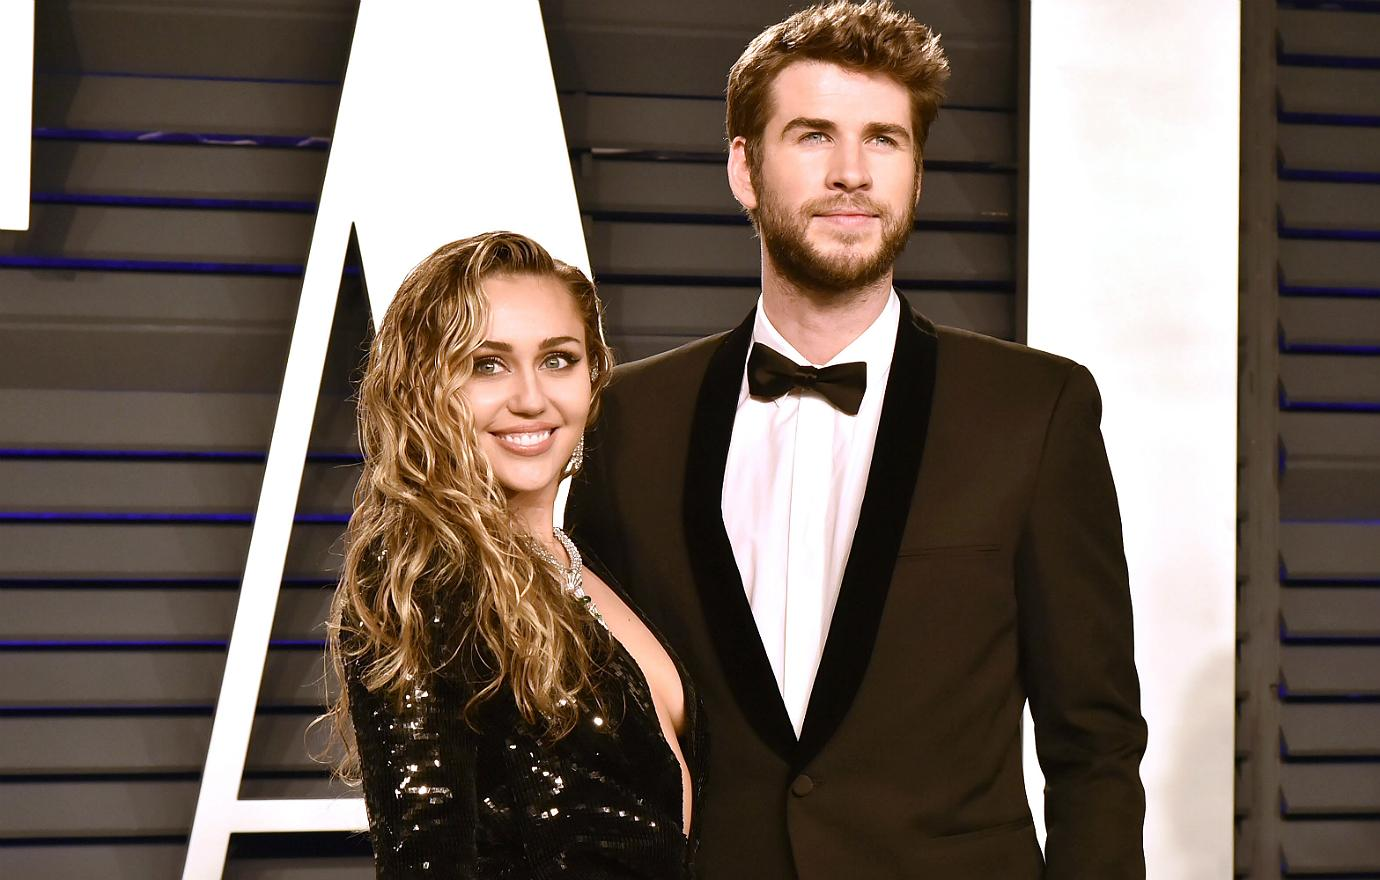 Miley-Cyrus-Liam-Hemsworth-2019